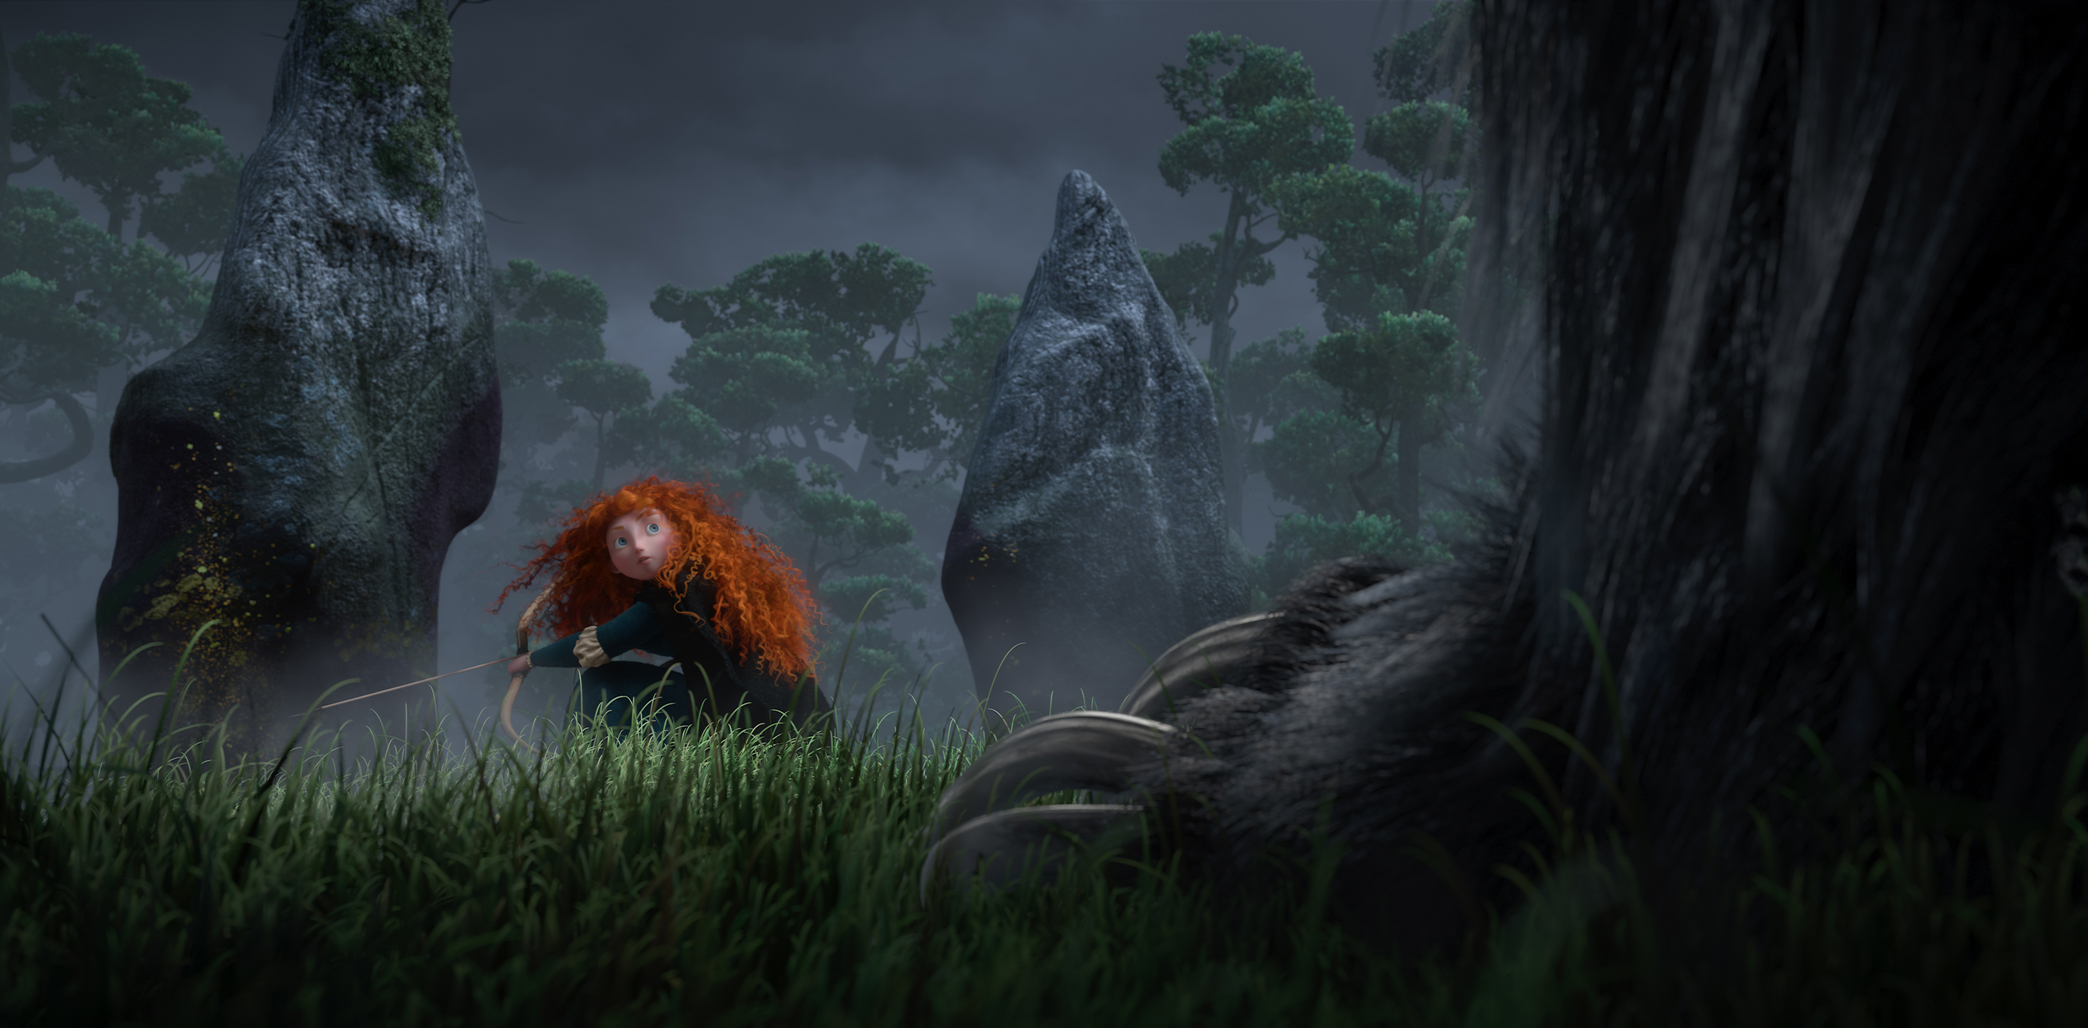 New Brave Image Features The Bear, Merida, And The Bow